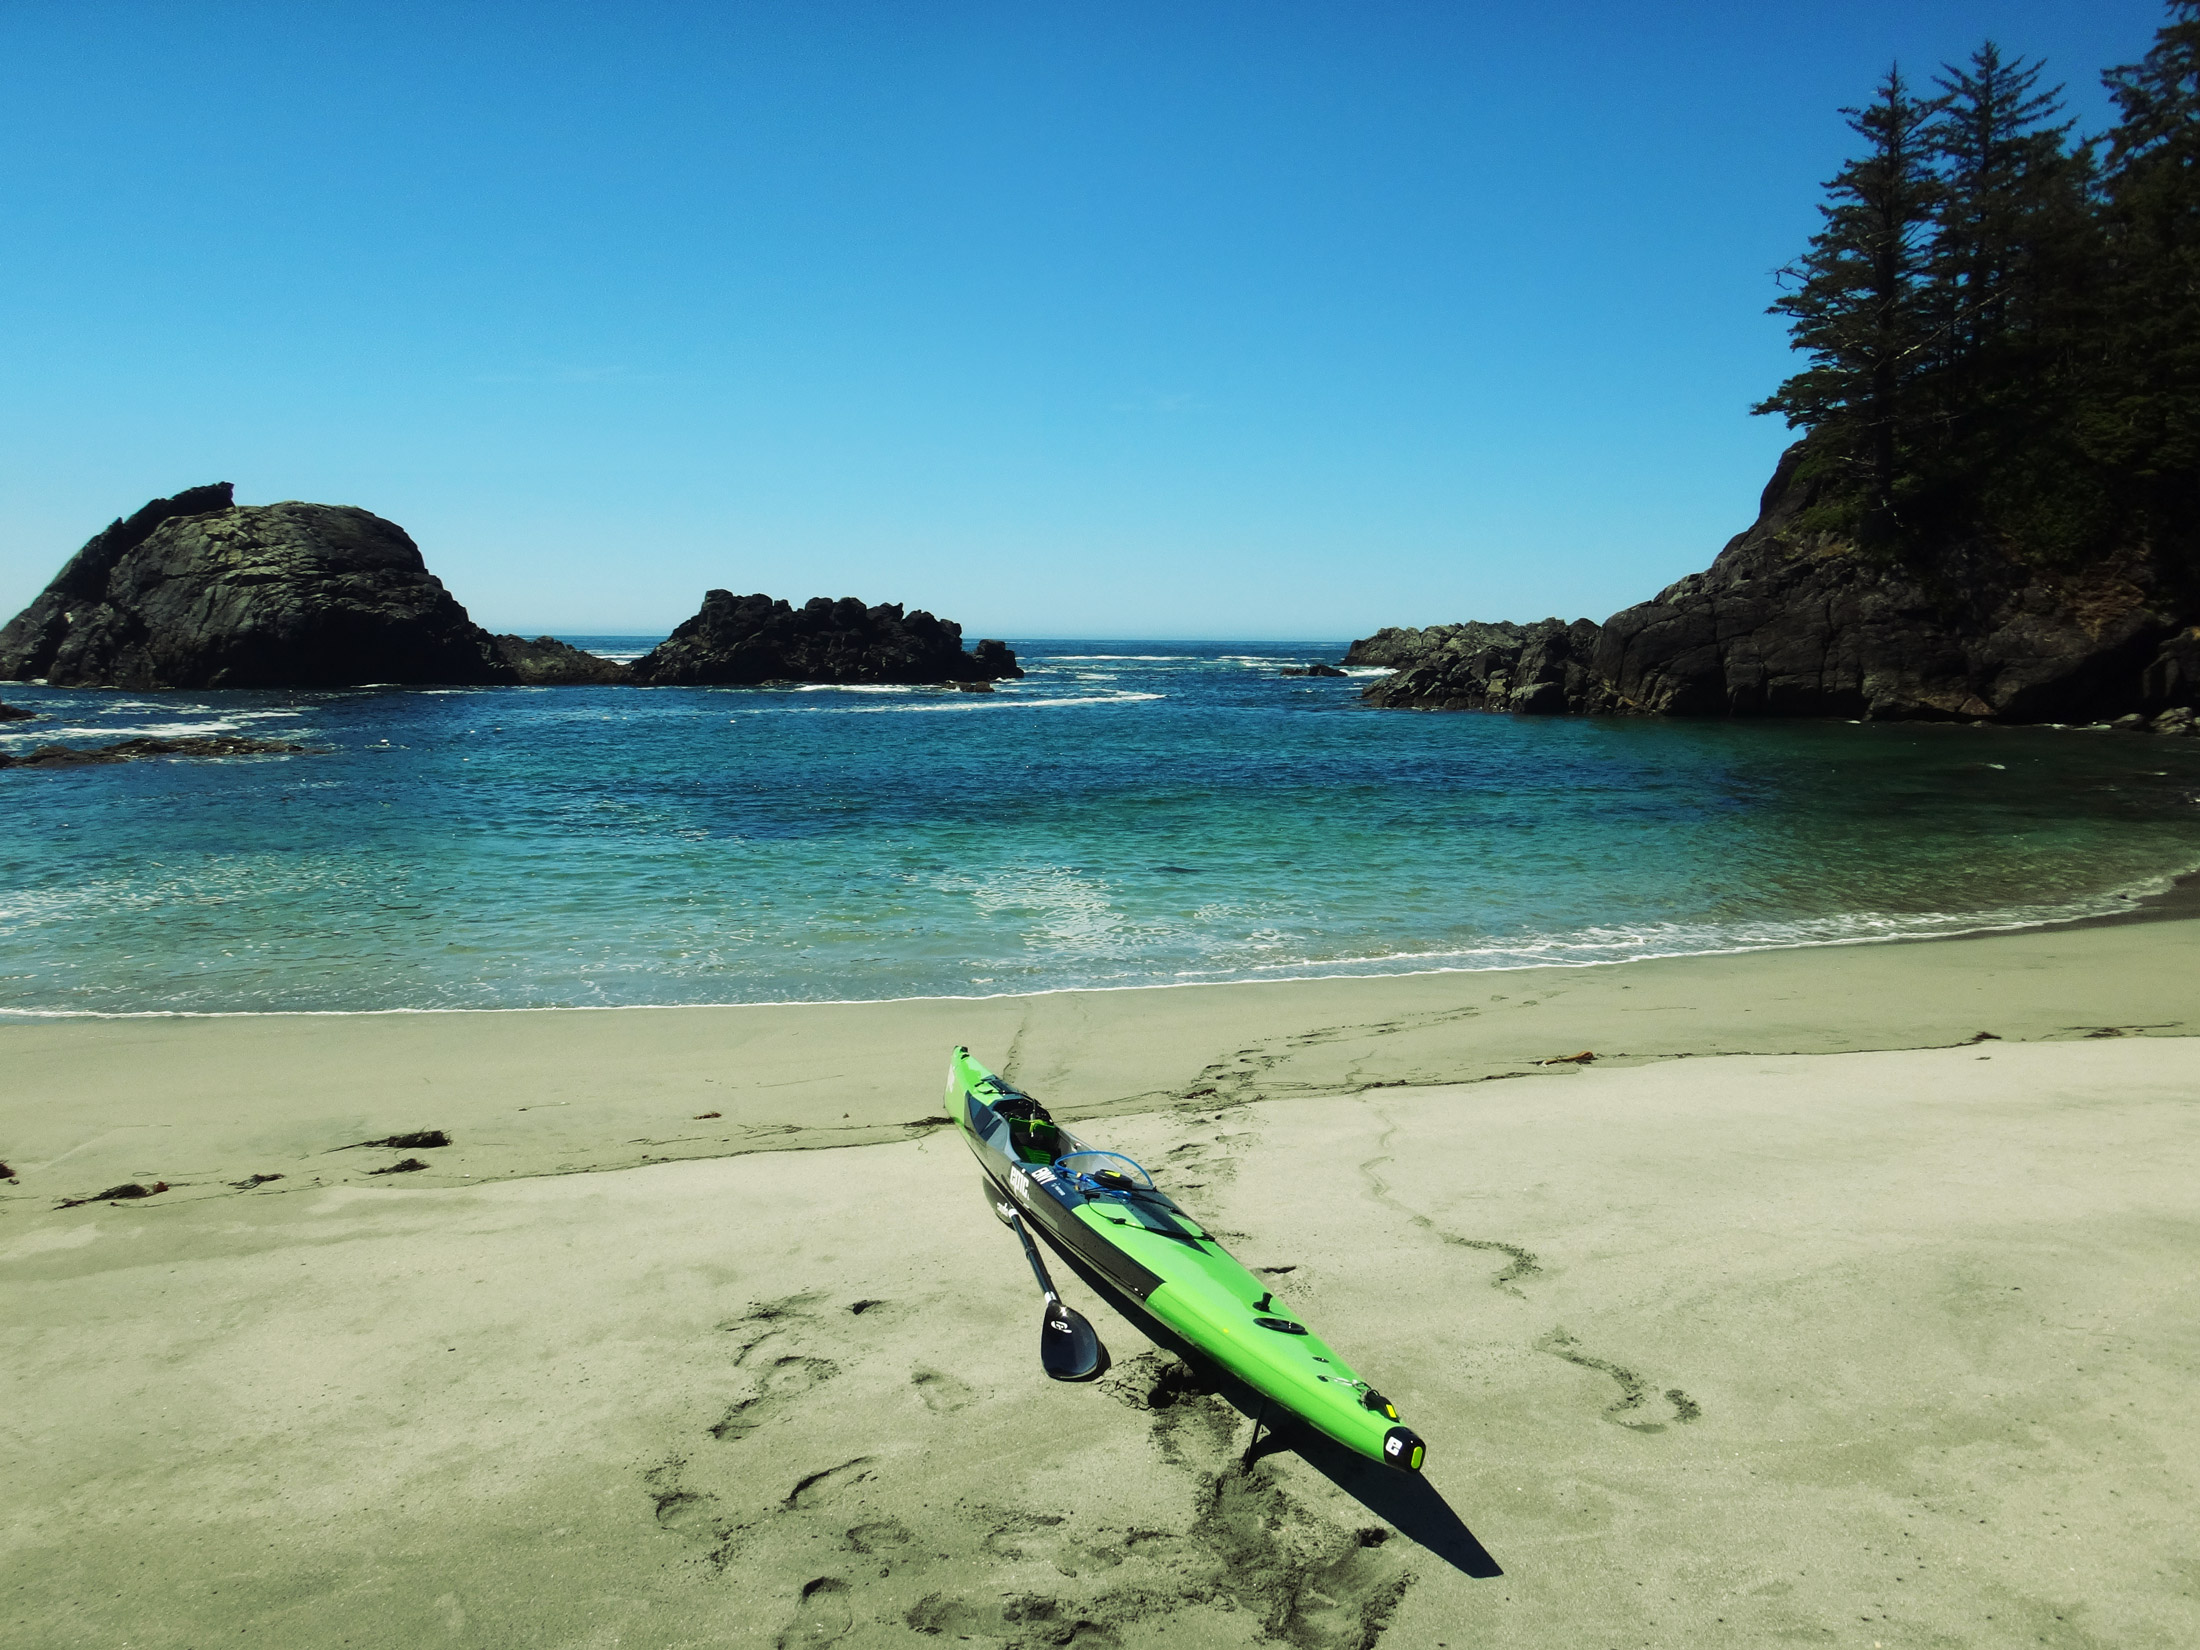 I designed and built a custom surfski in partnership with Epic Kayaks for my 2015 Vancouver Island Circumnavigation Record Attempt. You can read about that spicey little adventure  here.  I hope to make another attempt on the record sometime soon.